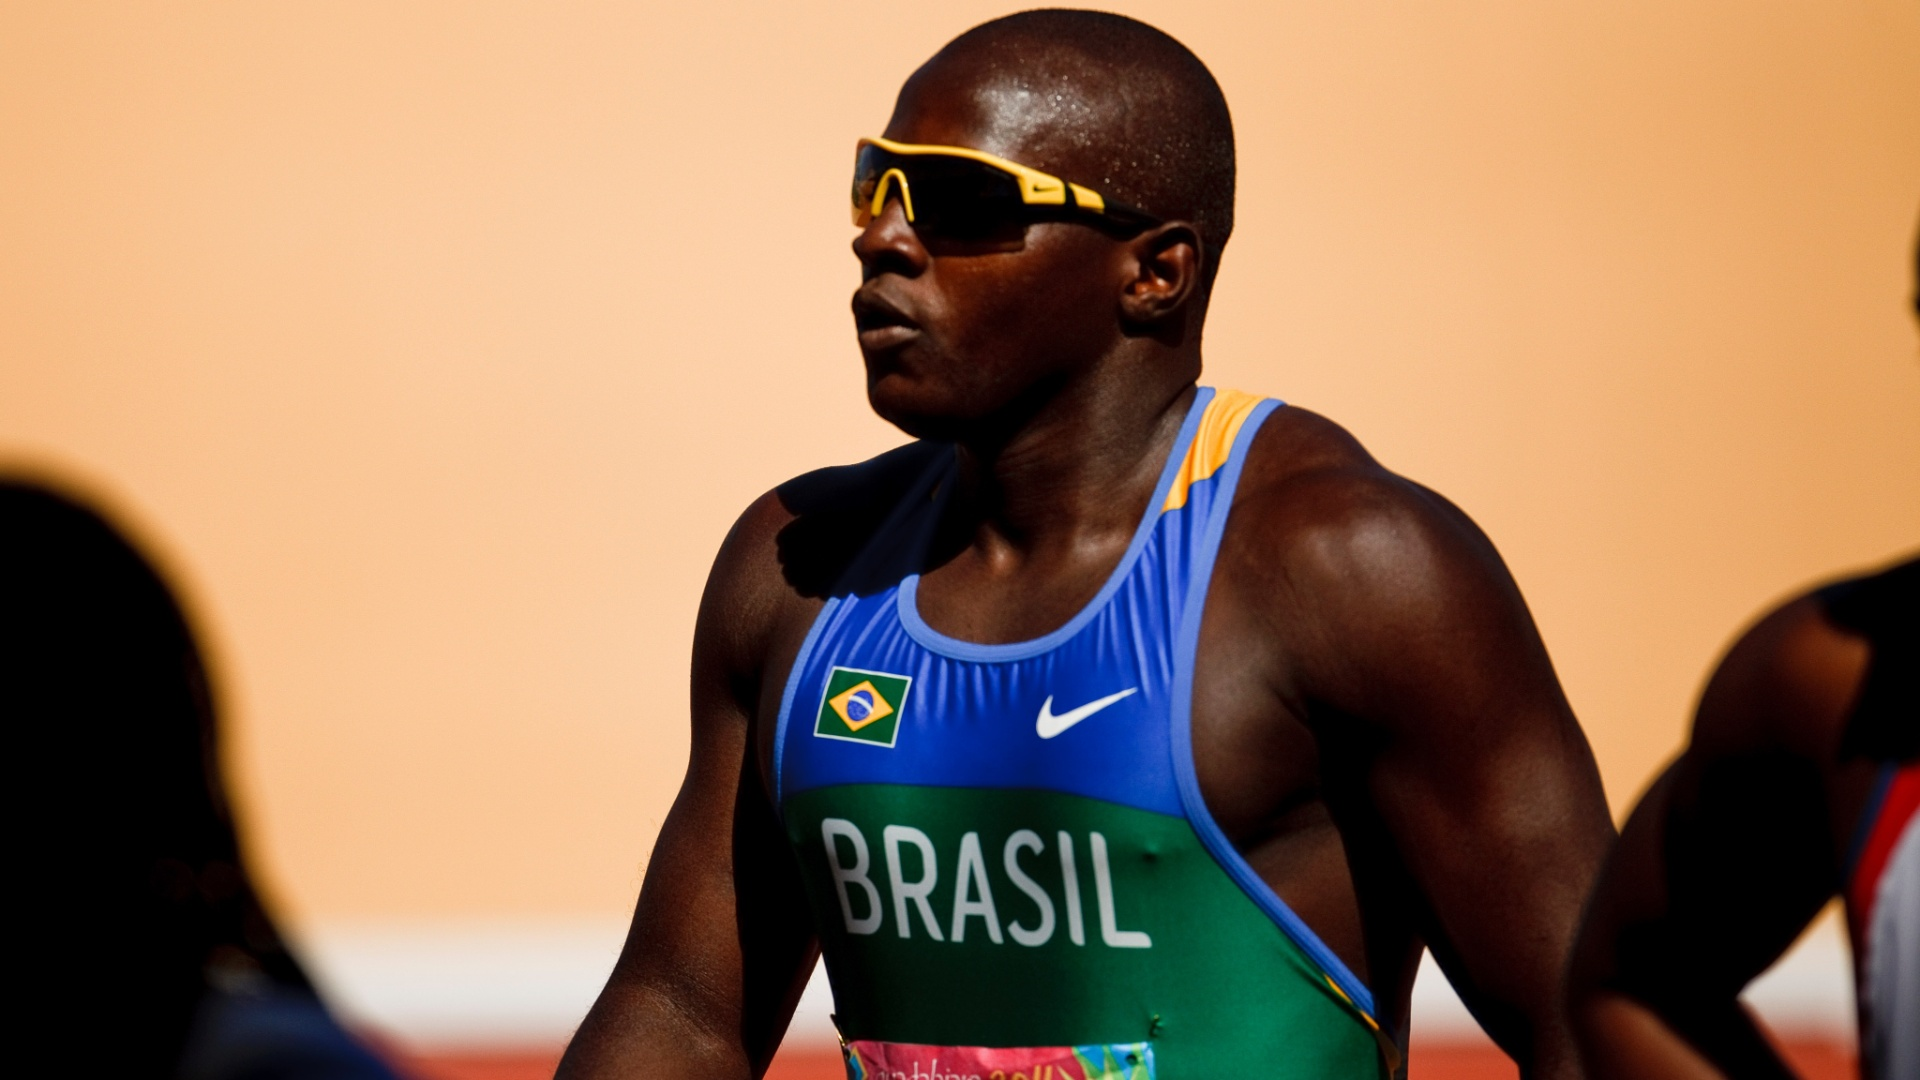 O brasileiro Nilson Andr venceu sua bateria dos 100 m e avanou  semifinal no Pan de Guadalajara, mais tarde ele conseguiu a classificao para a final (24/10/2011)